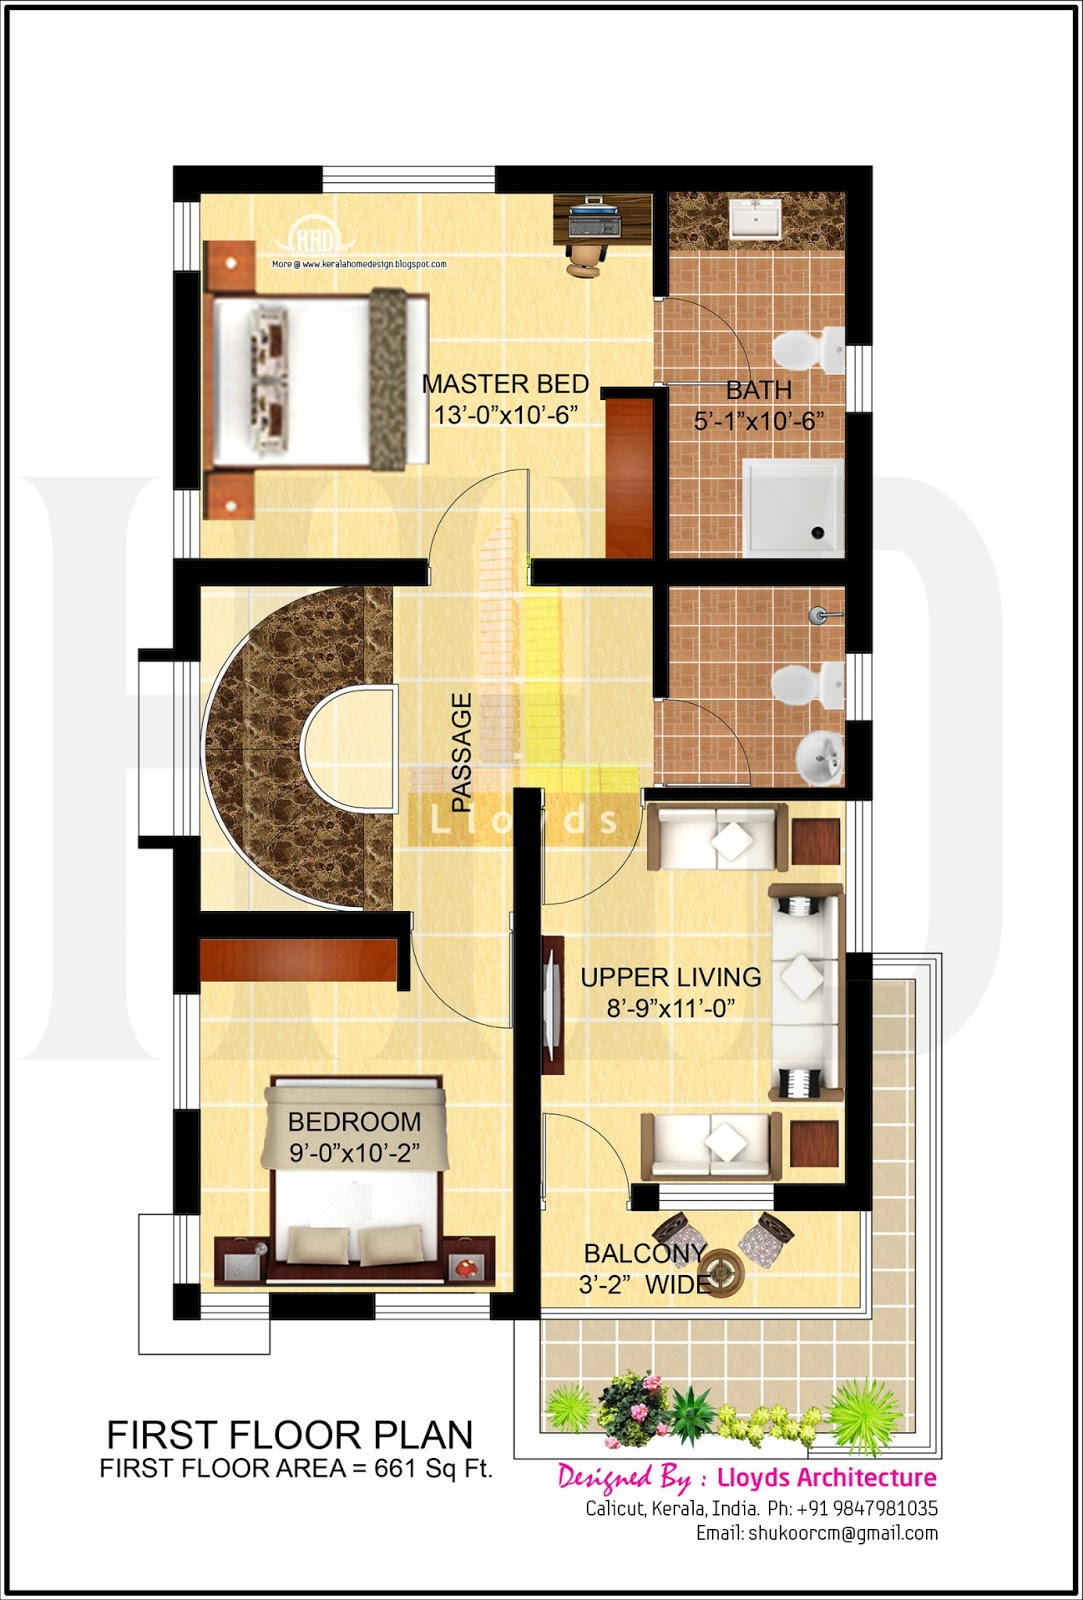 4 bedroom house plan in less that 3 cents home kerala plans for 4 bedroom house plans